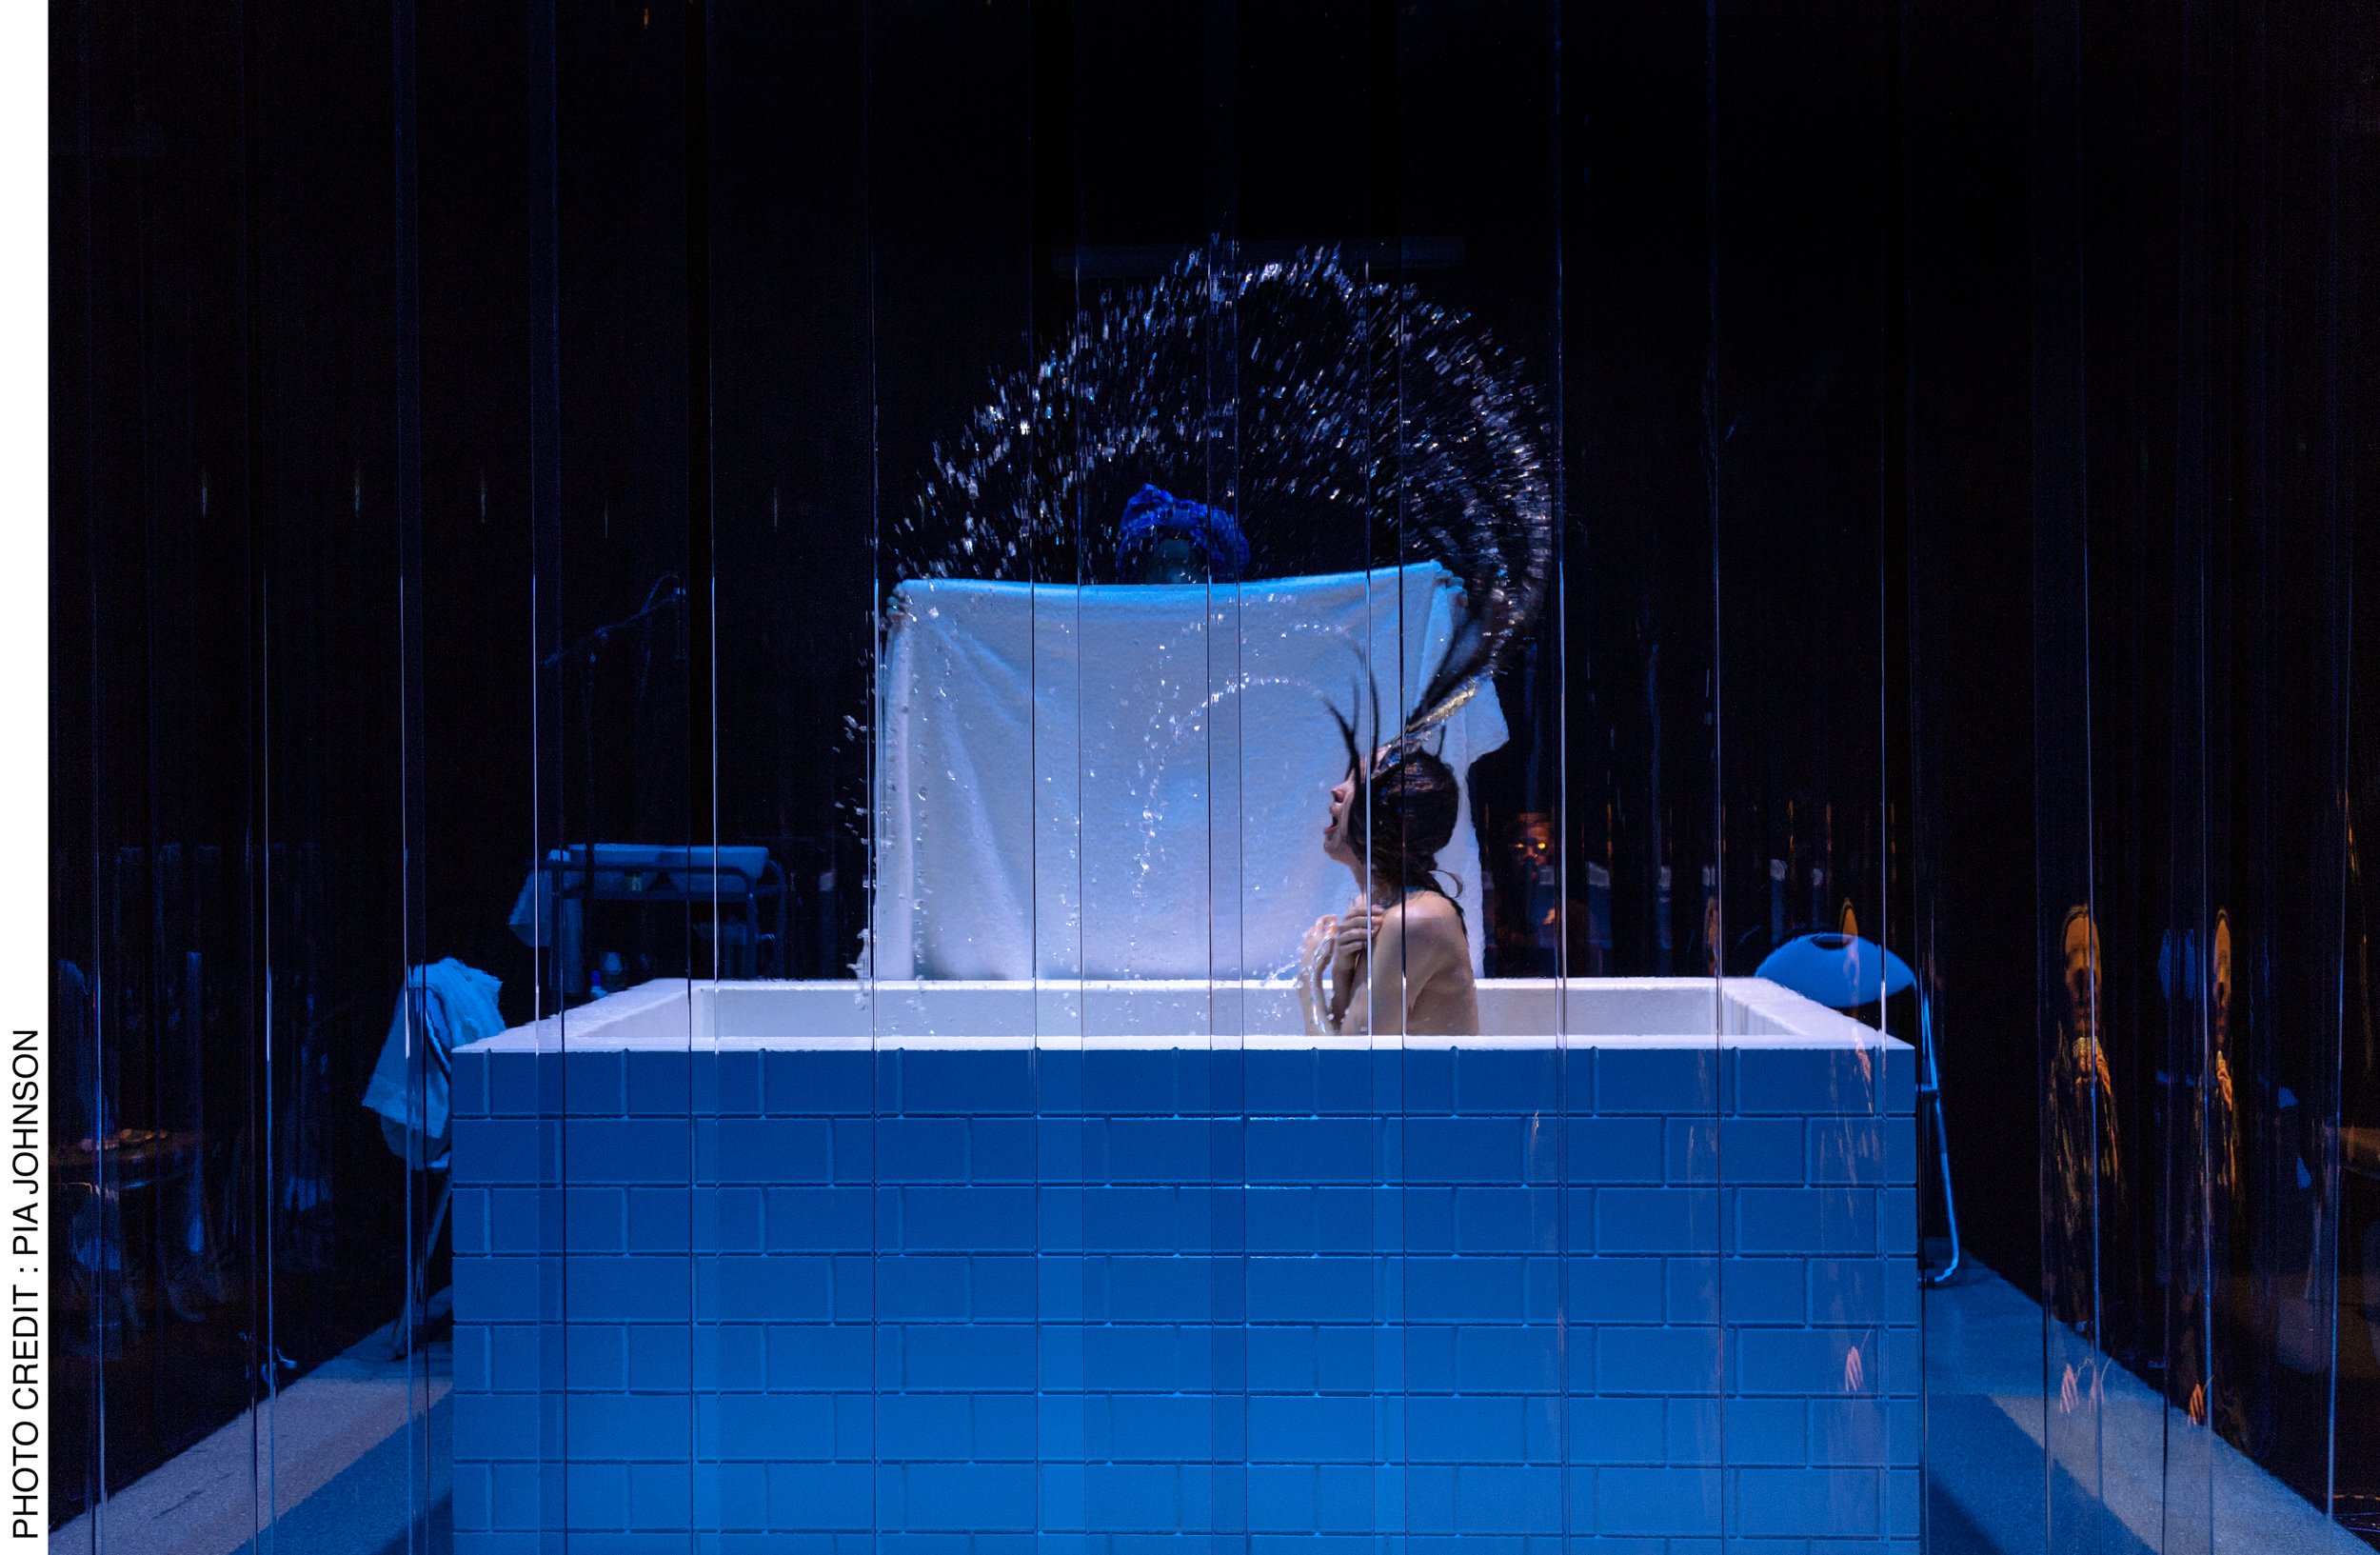 "<p>Act <span class=""numbers"">2</span>&nbsp;of <i>Dyb­buks </i>and the mik­vah scene. Lau­ren Lan­glois throws back her head as water from the rit­u­al bath is flung against the per­spex cur­tain, towards the audi­ence. Pho­to Cred­it: Pia&nbsp;Johnson</p>"